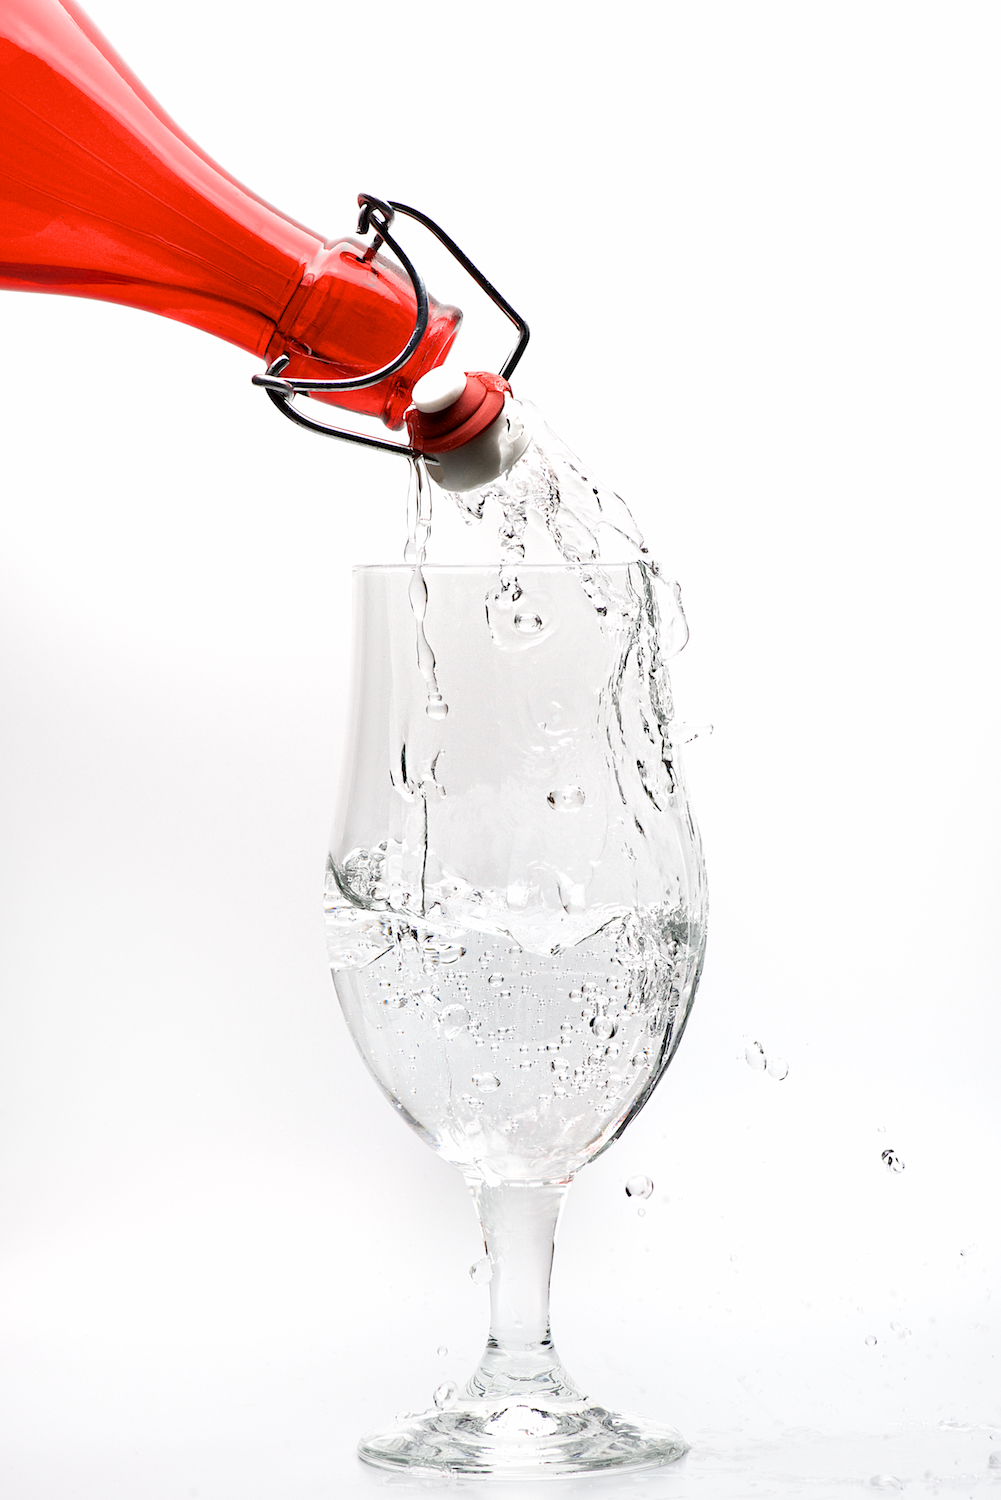 Water pour splash from red bottle into stem glass on white background by Bret Doss Commercial Food & Product Photography  Seattle